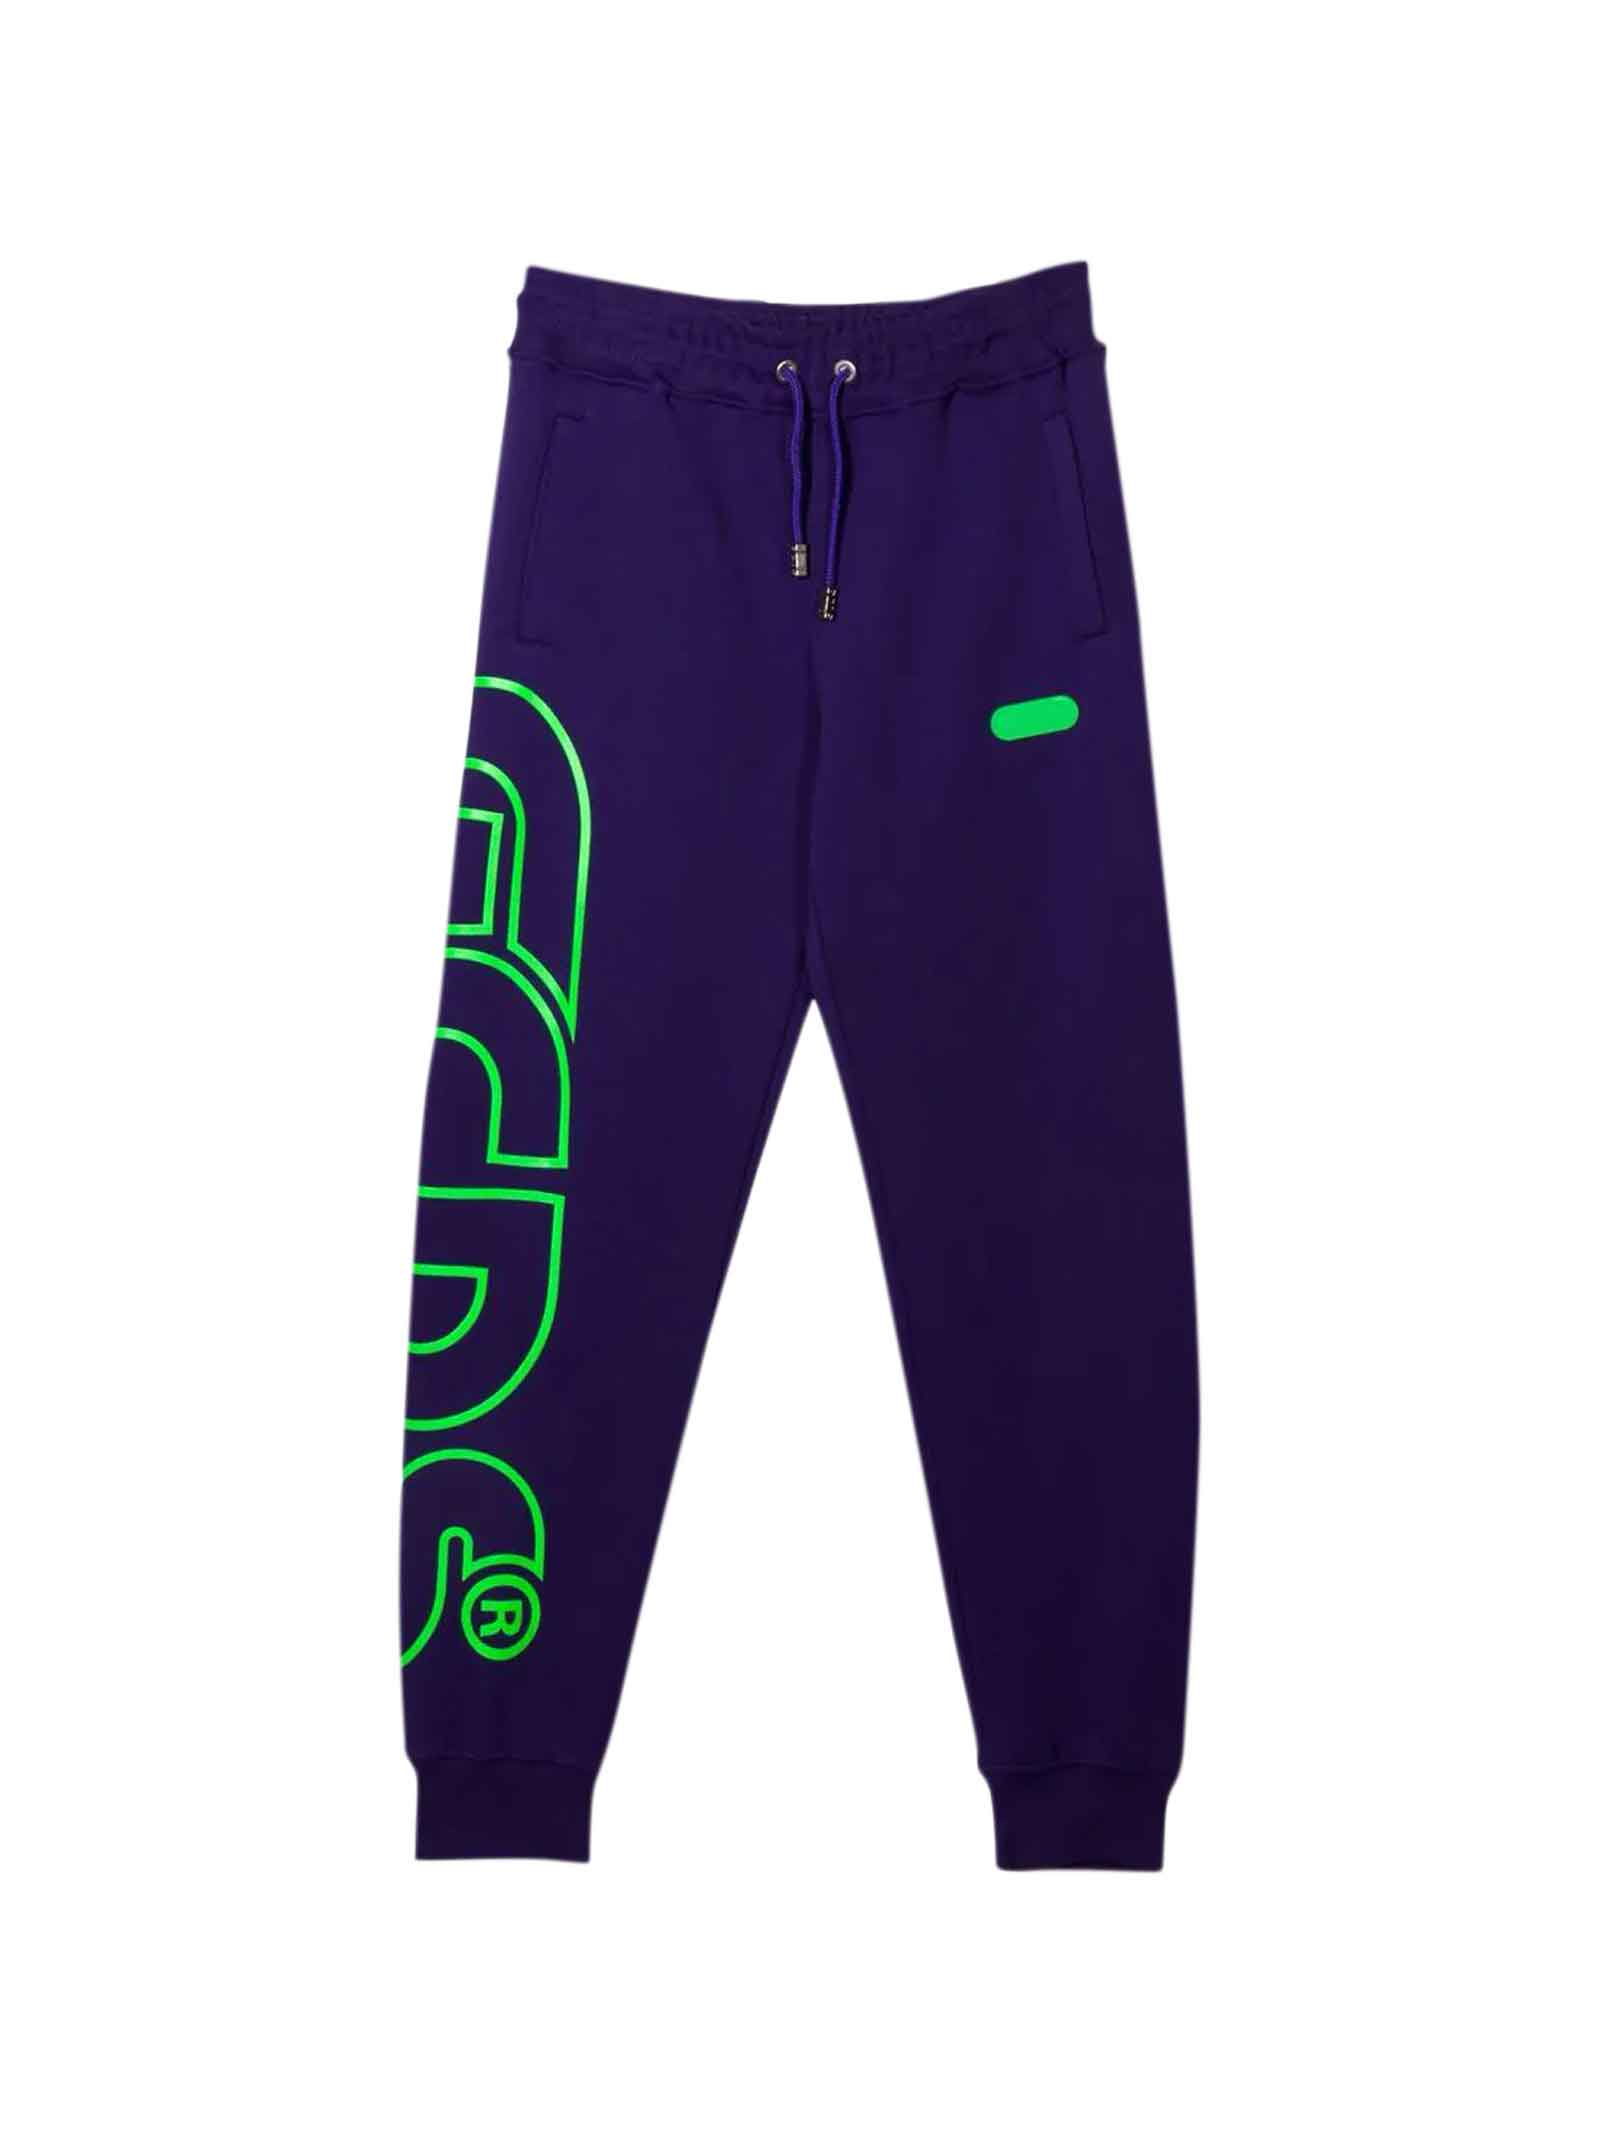 Purple Trousers With Green Print